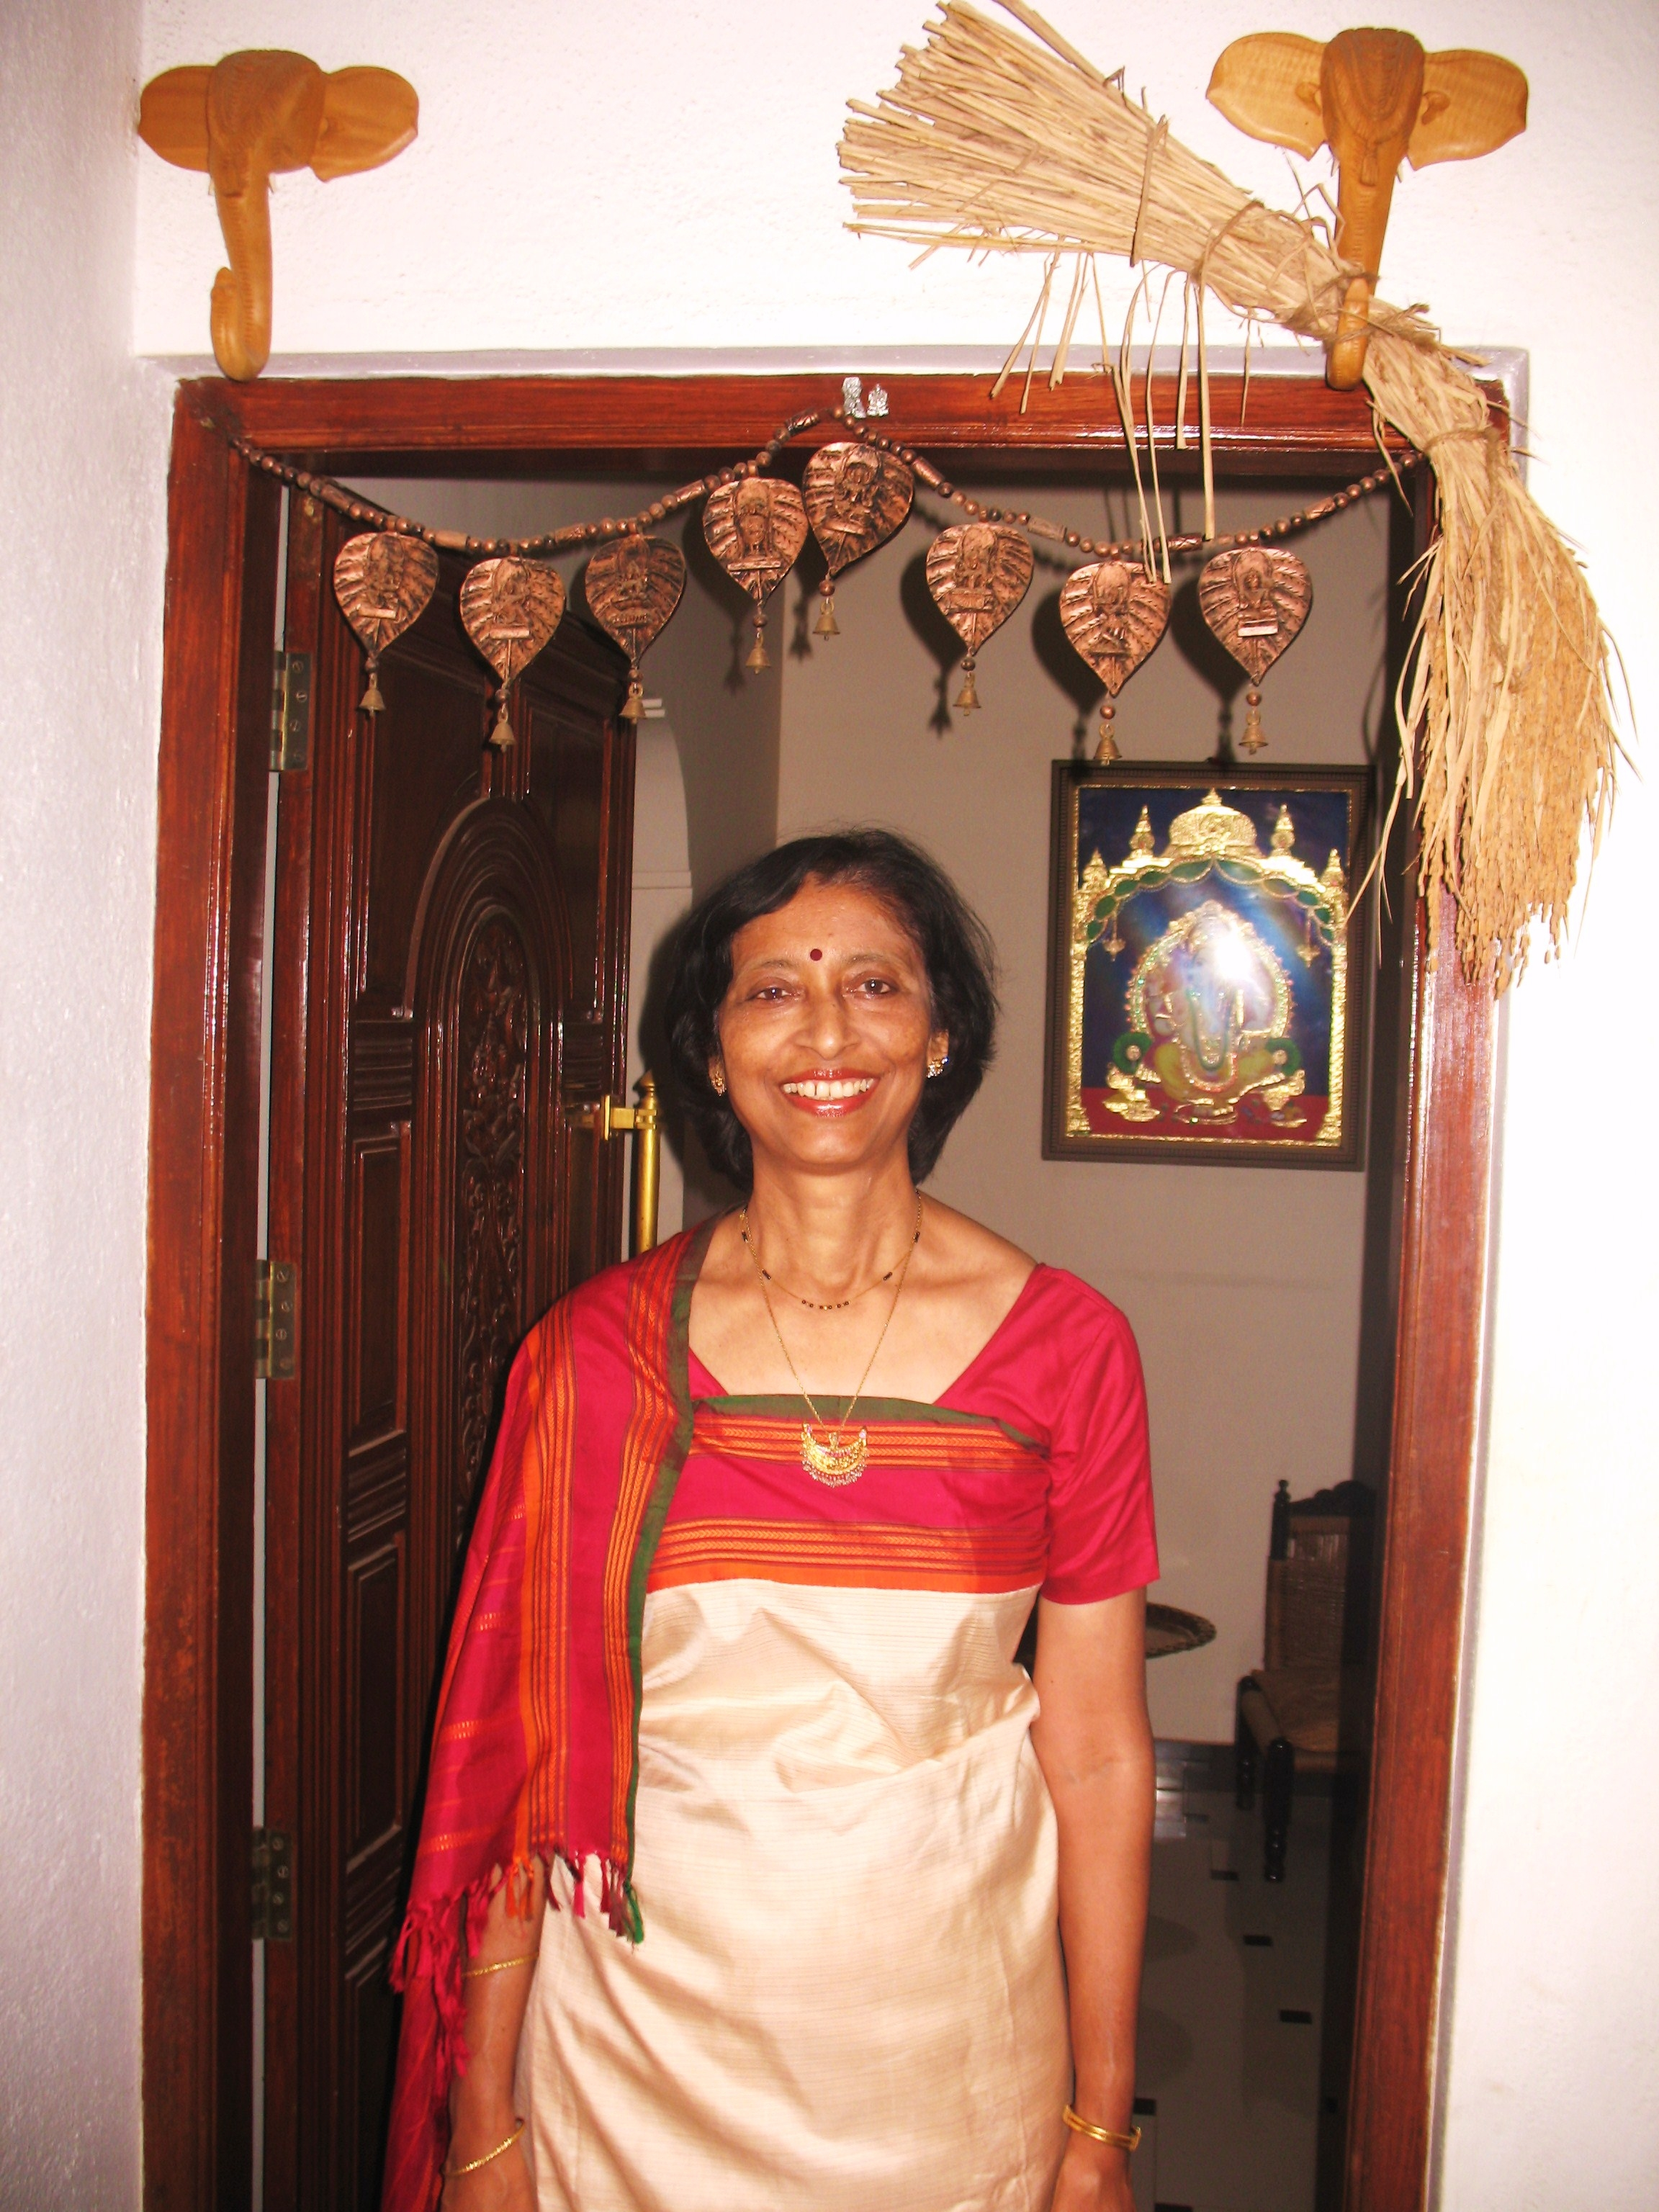 Ethnic Indian Saree For Bride: Ethnic Indian Home: Kaveri Chinnappa's Coorg Inspired Home